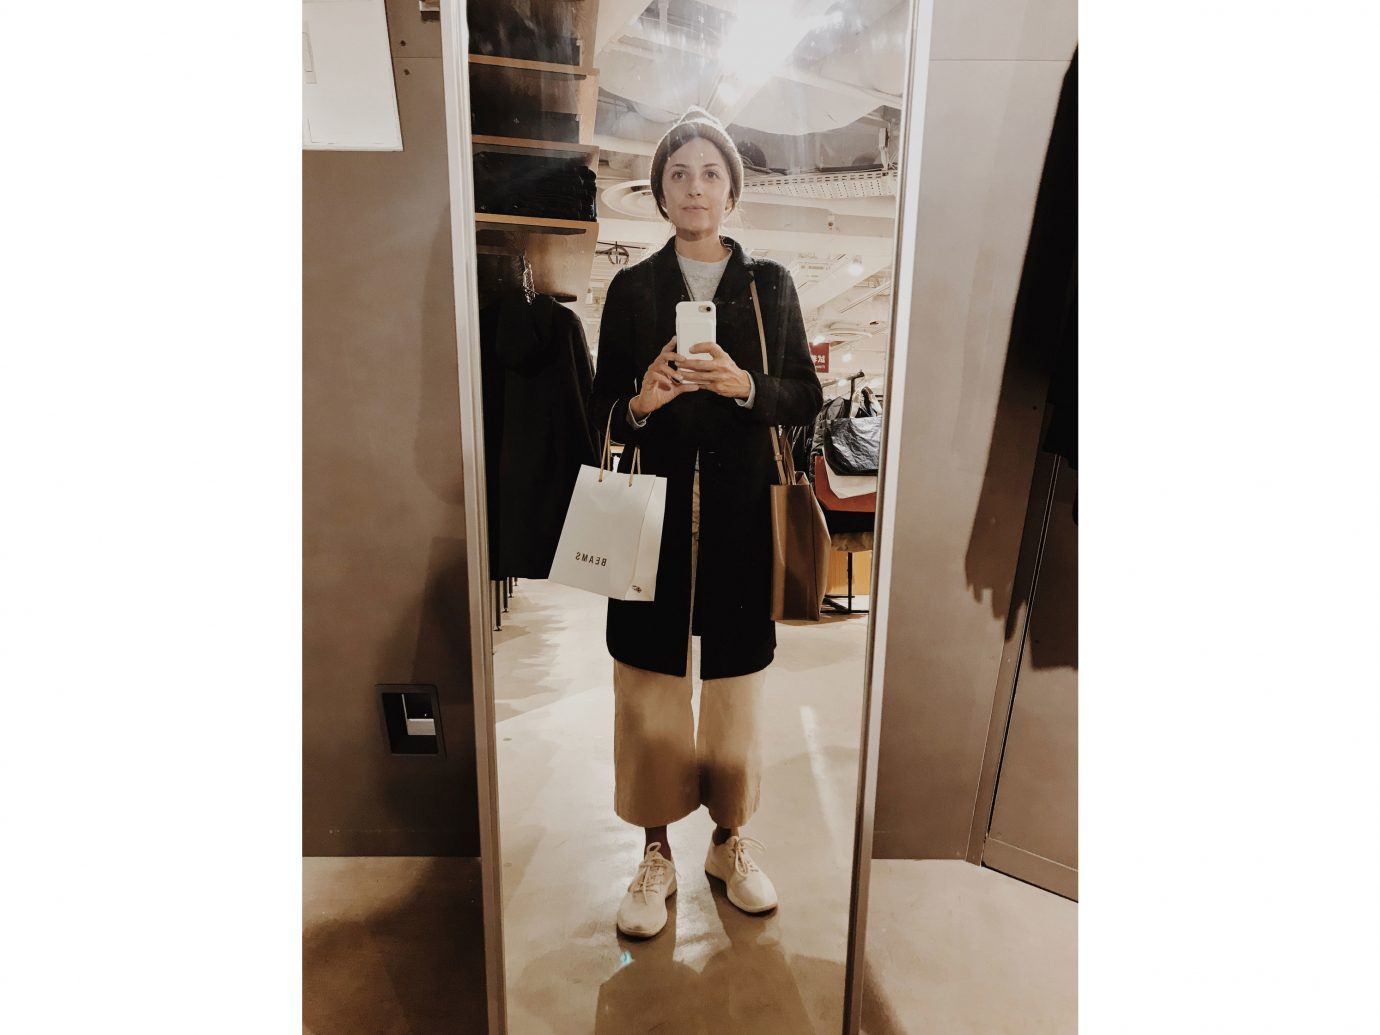 Influencers + Tastemakers Japan Photo Diary Tokyo indoor fashion model shoulder suit fashion coat outerwear joint shoe socialite fashion design posing